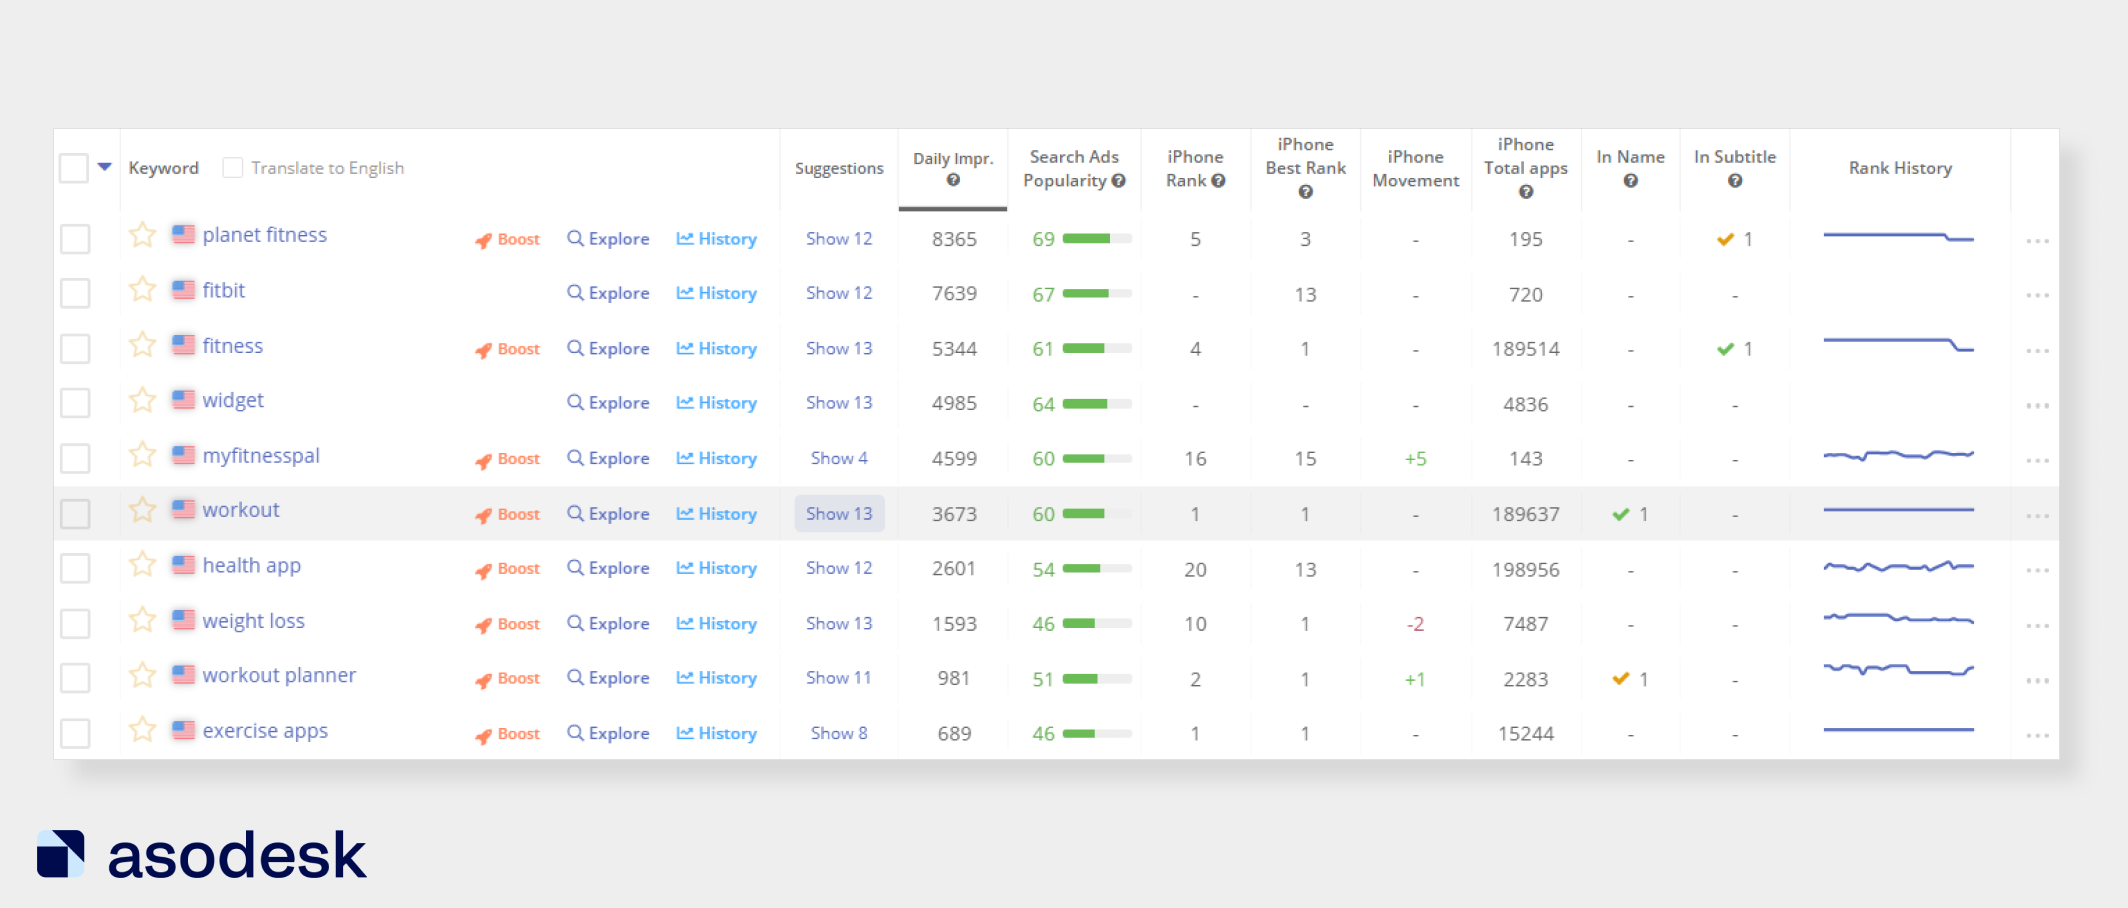 Keyword Analytics in Asodesk shows search suggestions for each query